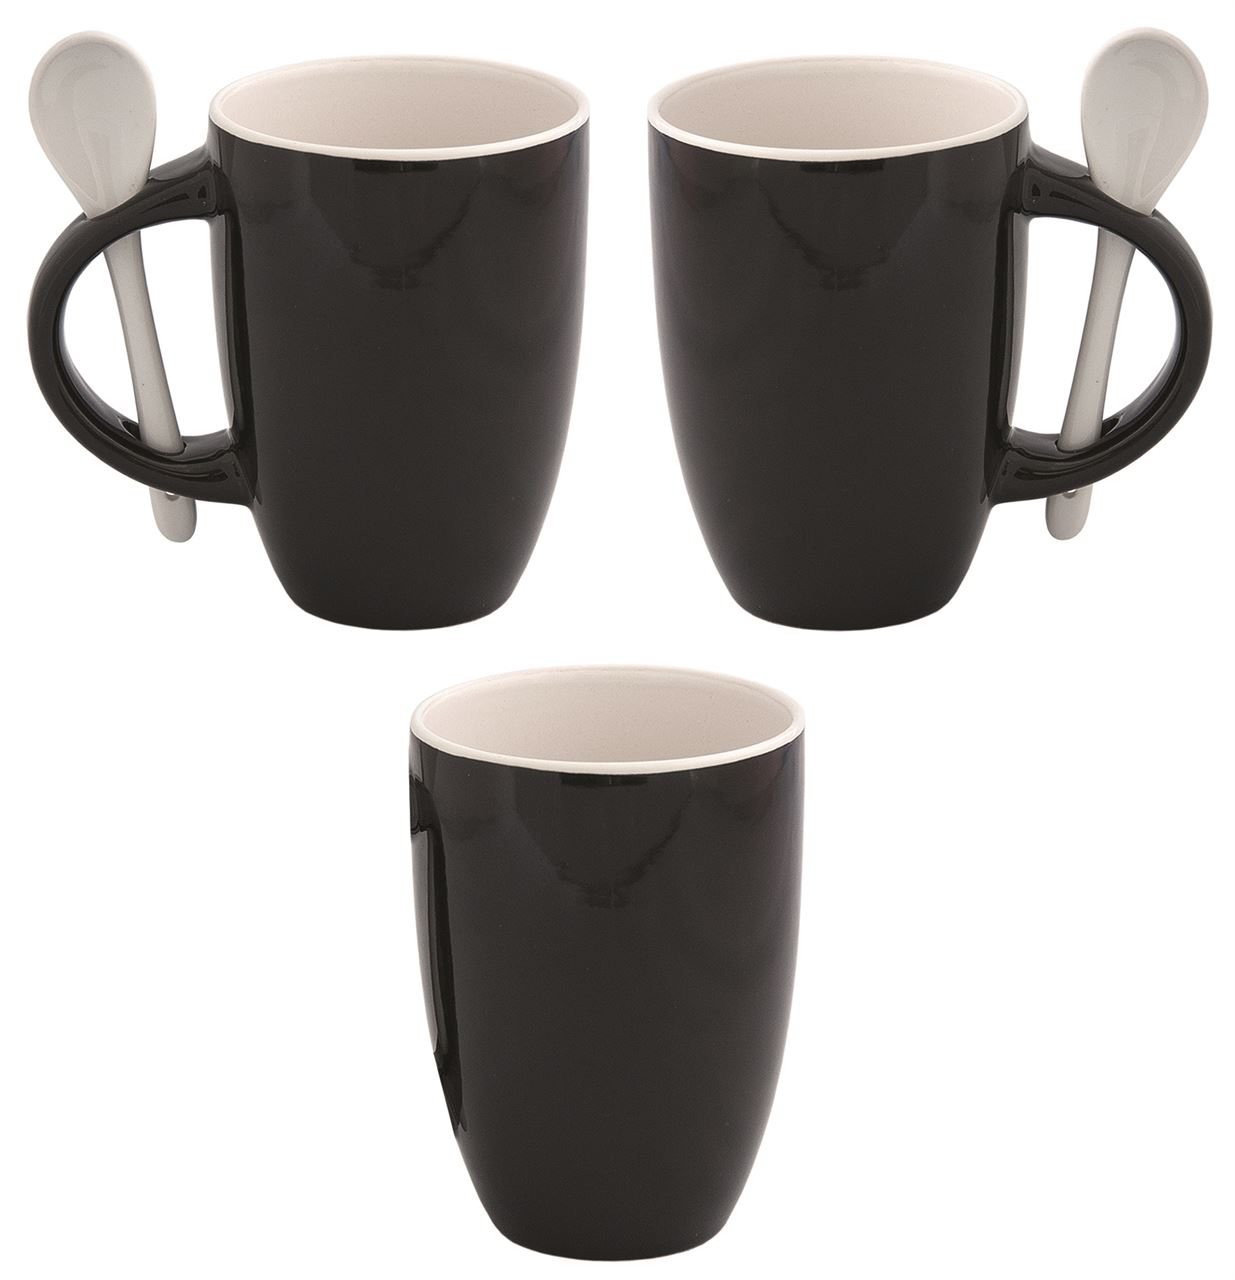 Picture of Fuzion Two-Tone With Spoon Mug